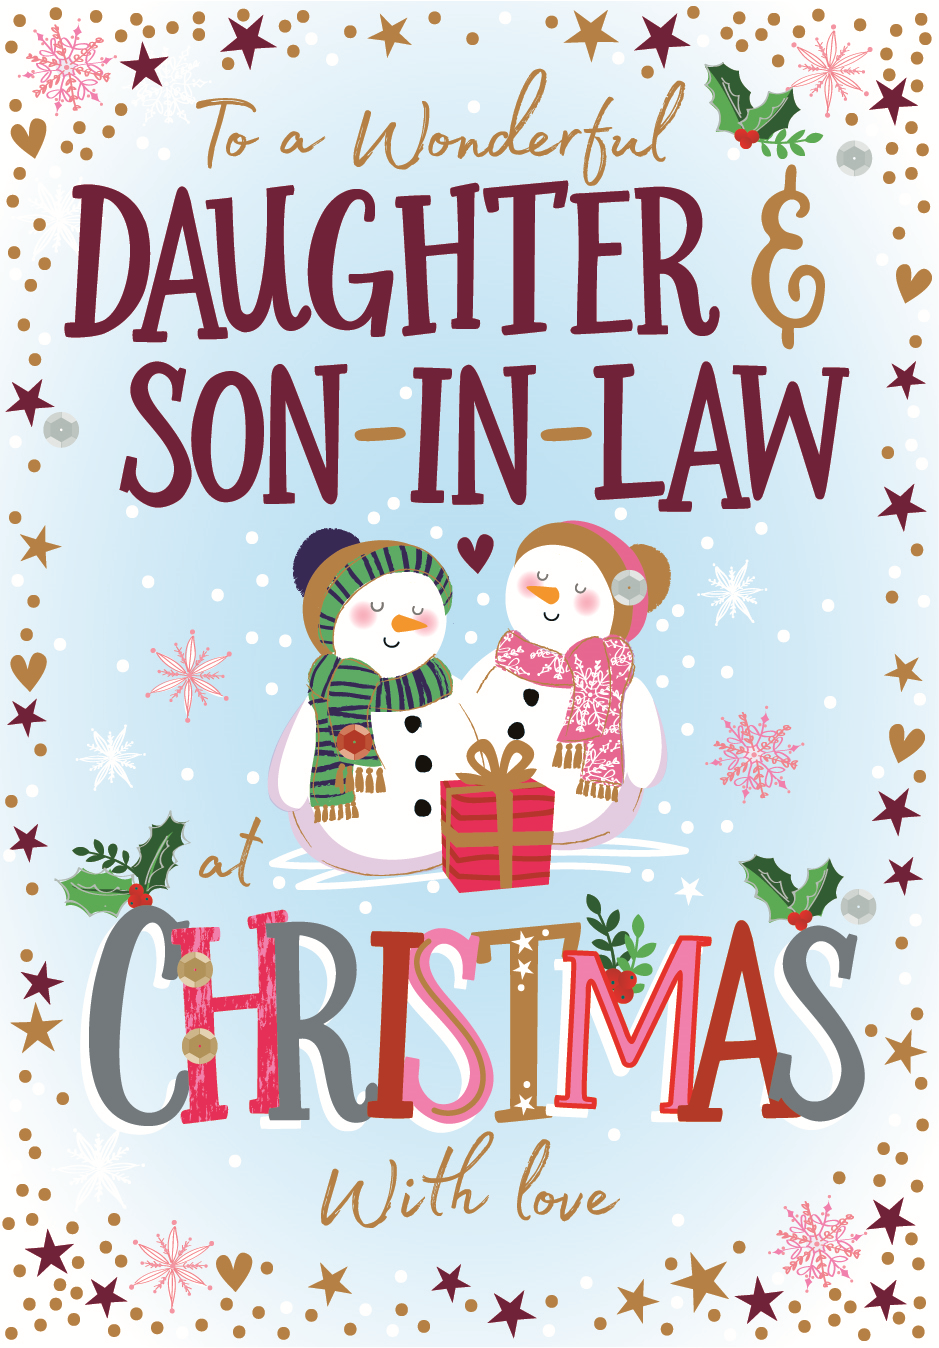 Christmas Wishes Card.Daughter Son In Law Embellished Christmas Greeting Card